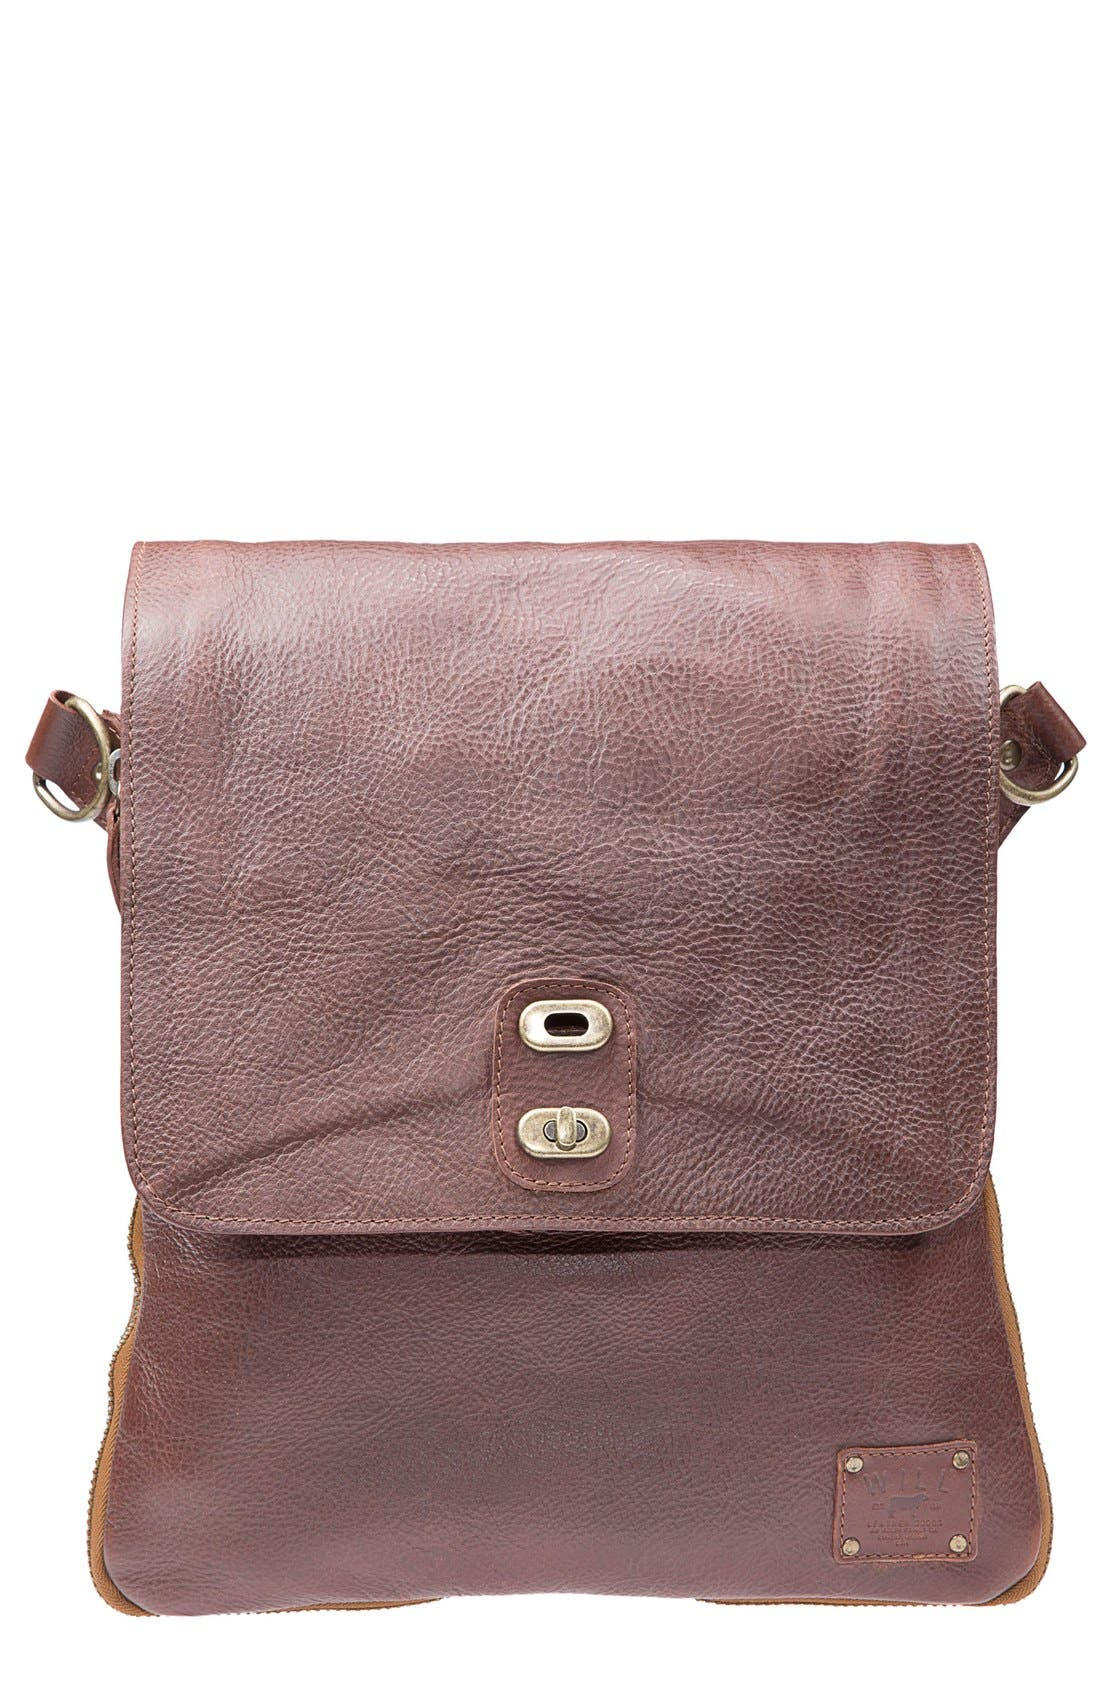 Main Image - Will Leather Goods 'Otto' Crossbody Bag